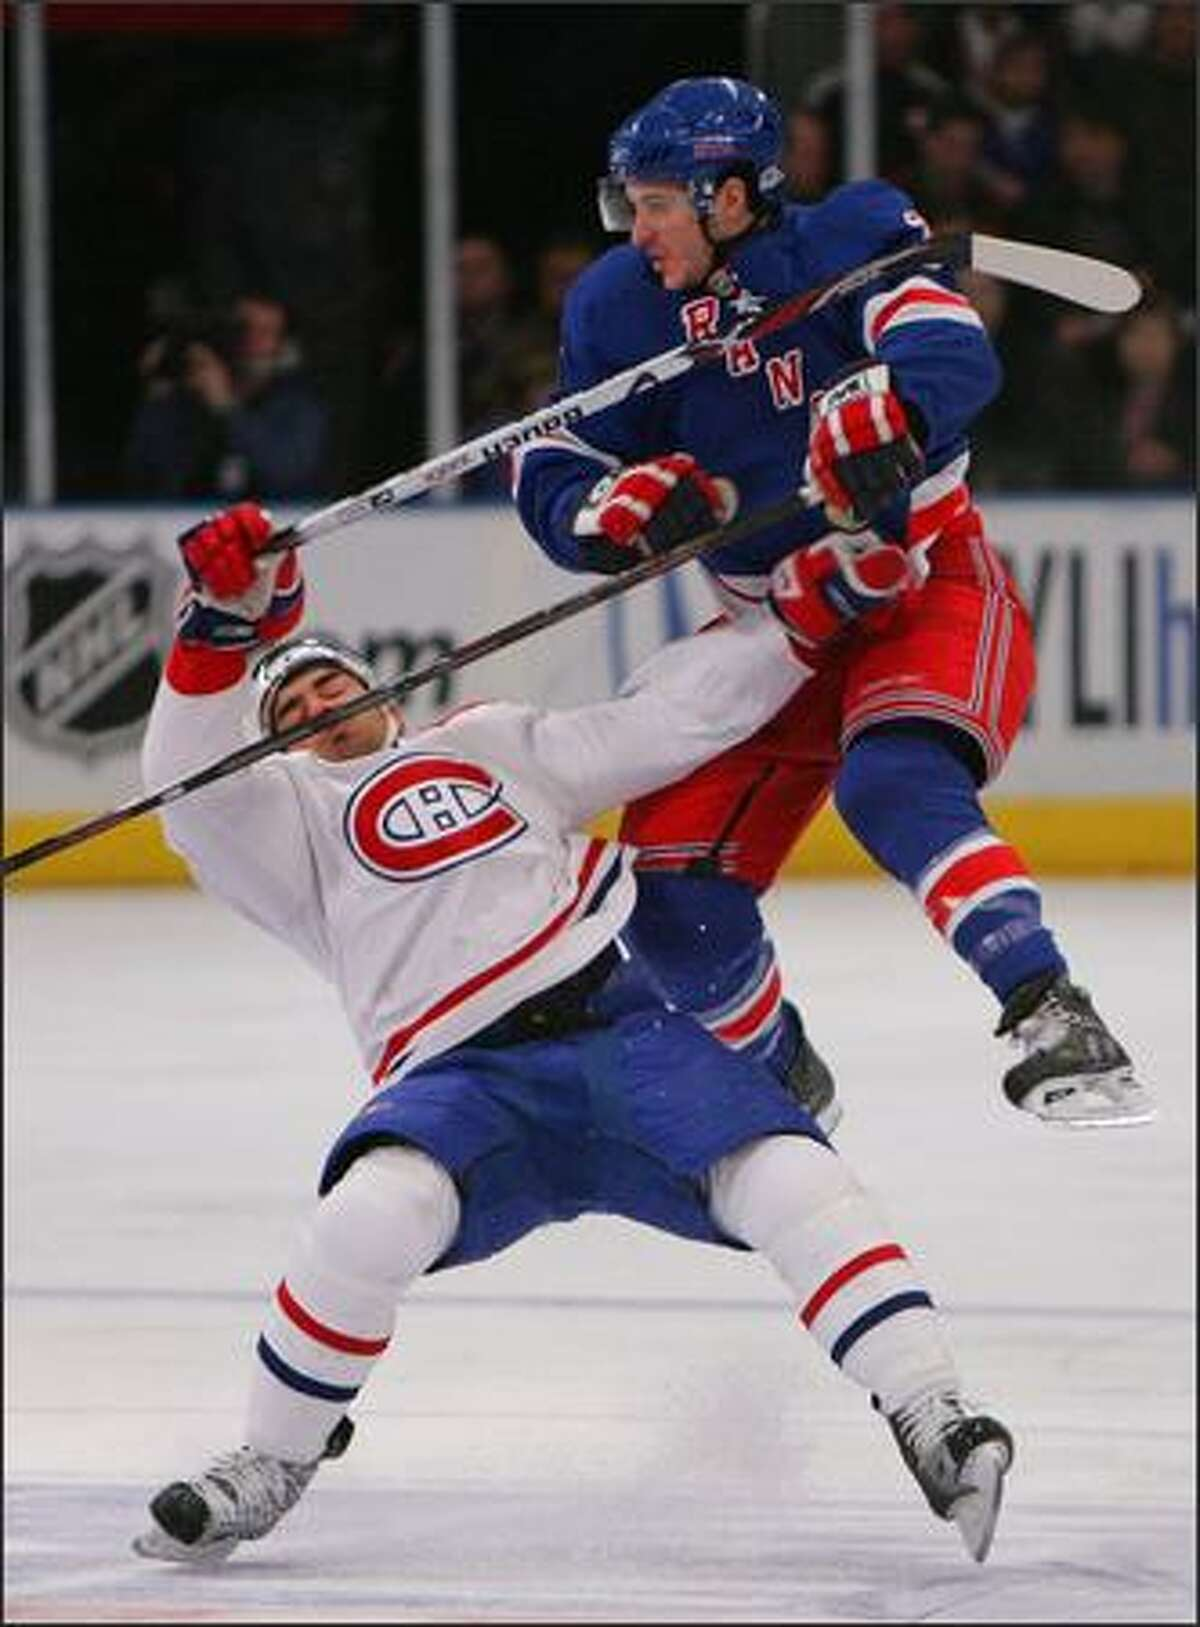 Francis Bouillon #51 of the Montreal Canadiens is hit by Ryan Callahan #24 of the New York Rangers at Madison Square Garden in New York City. Photo by Bruce Bennett/Getty Images